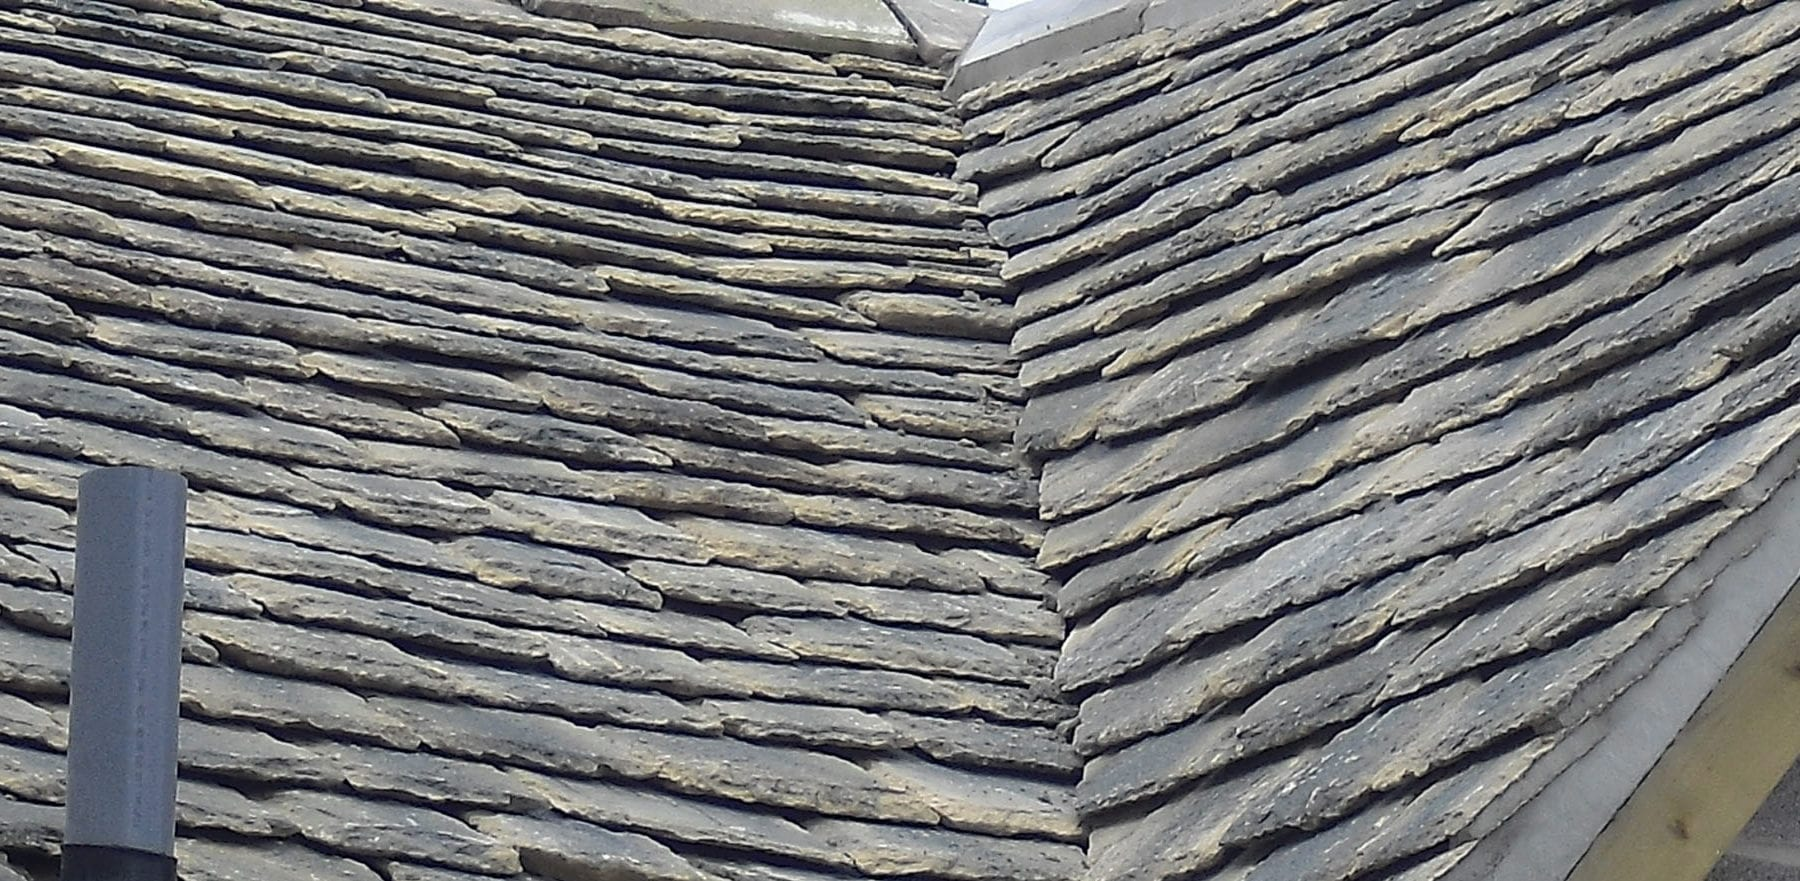 Lifestiles - Natural Stone Aged Roof Tiles - Letcombe, England 2